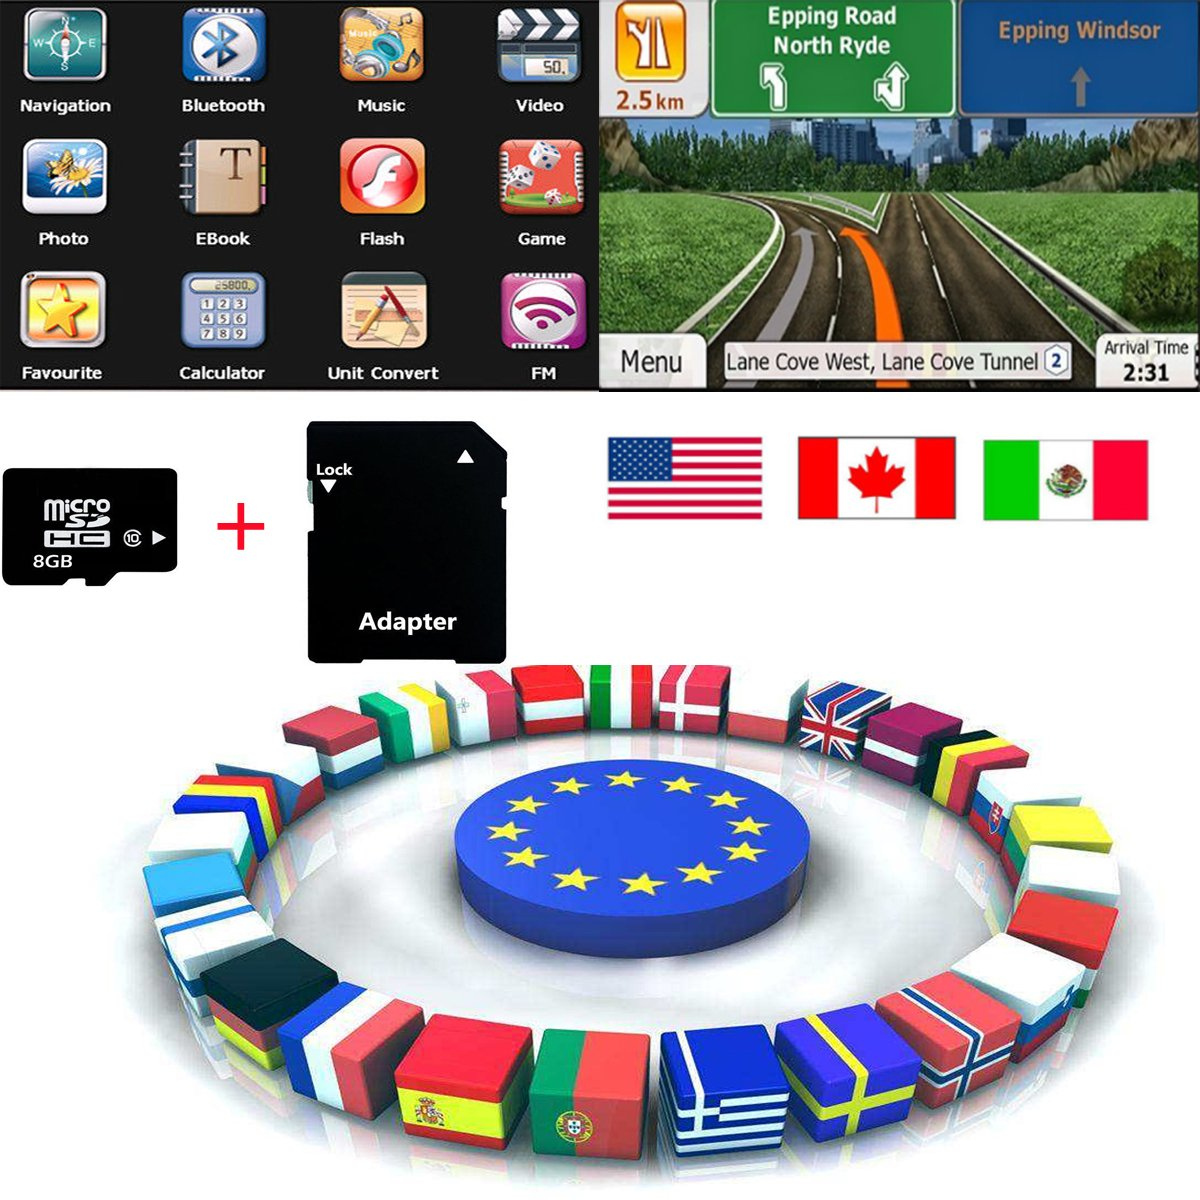 Quanmin Newest Android Gps Map 8G SD/TF Card USA Canada Mexico For Android System Navigation Map Updates GPS Software